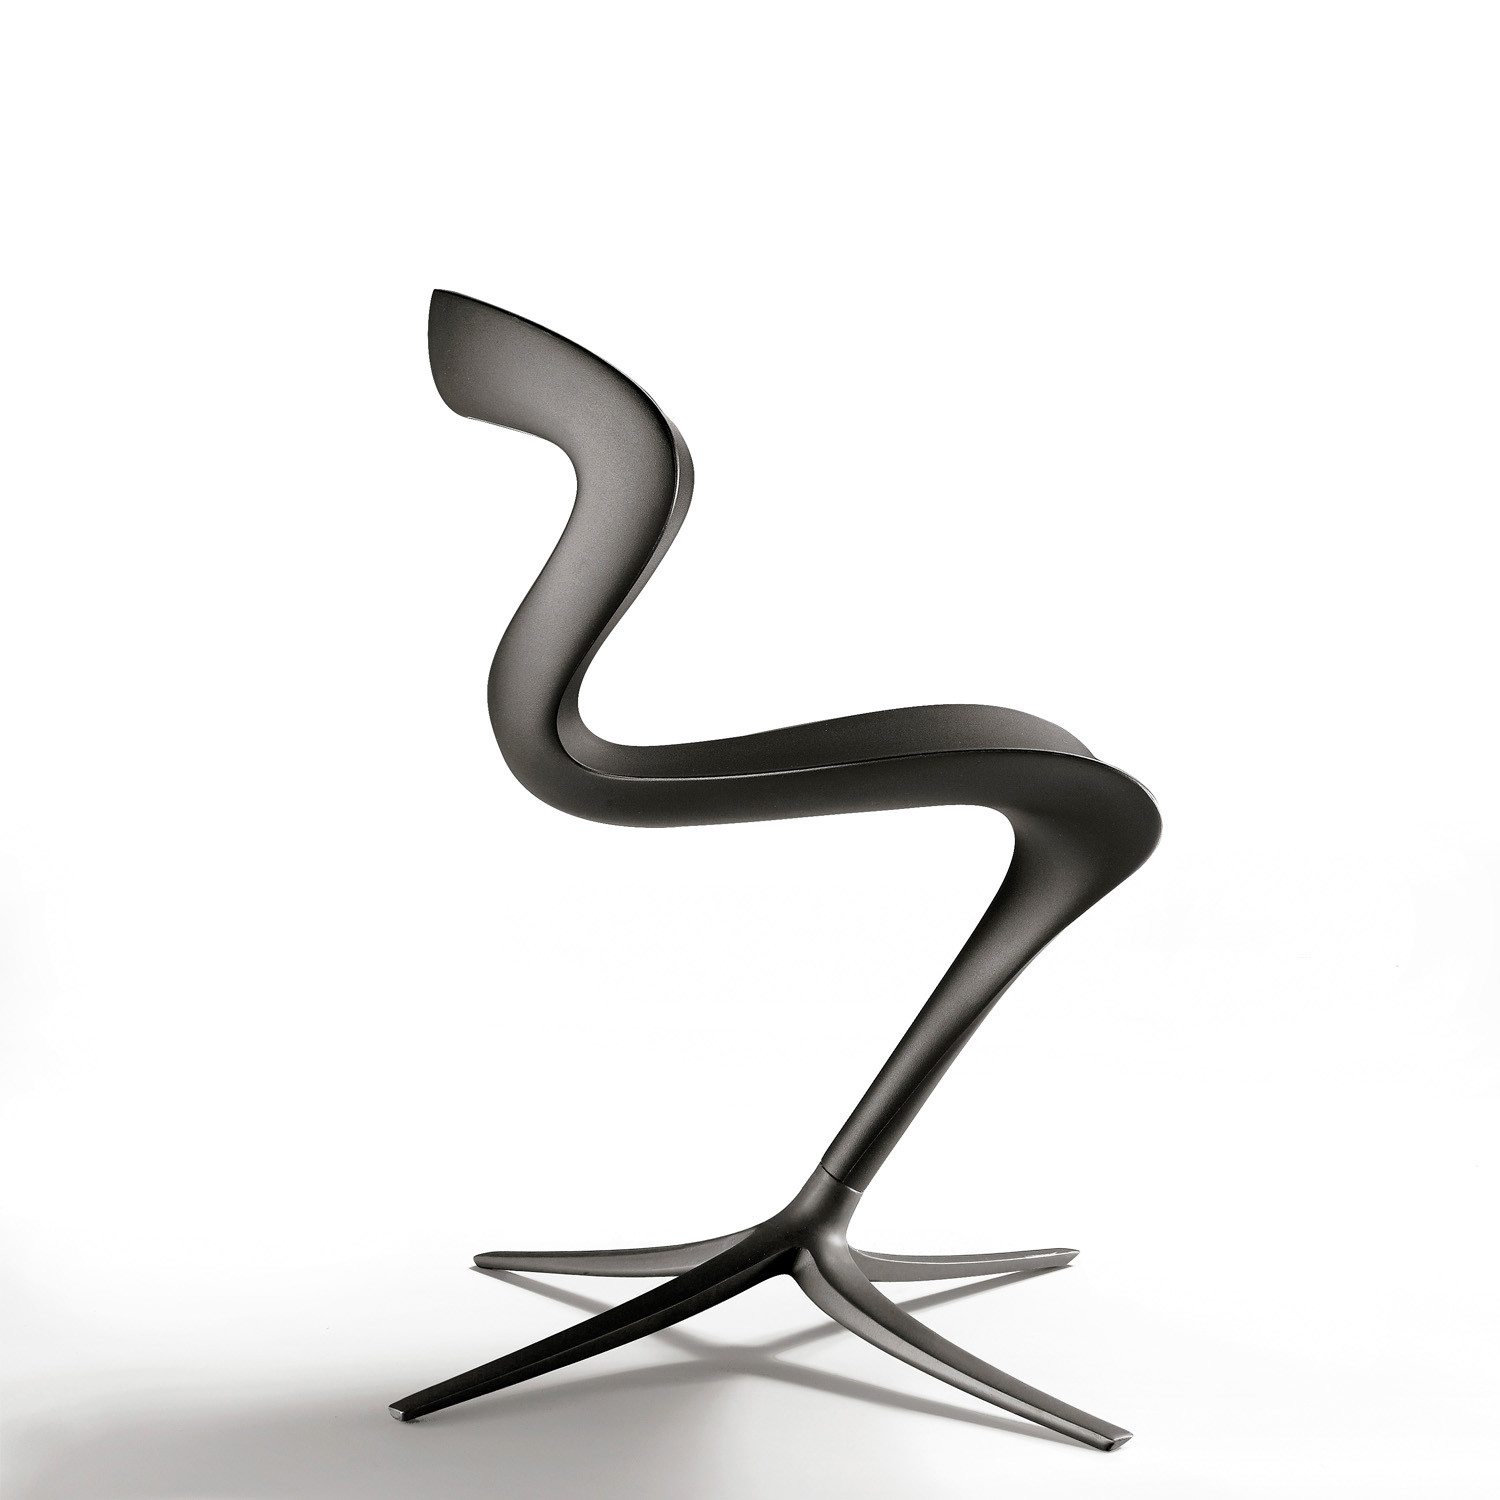 Callita Sculptured Chair